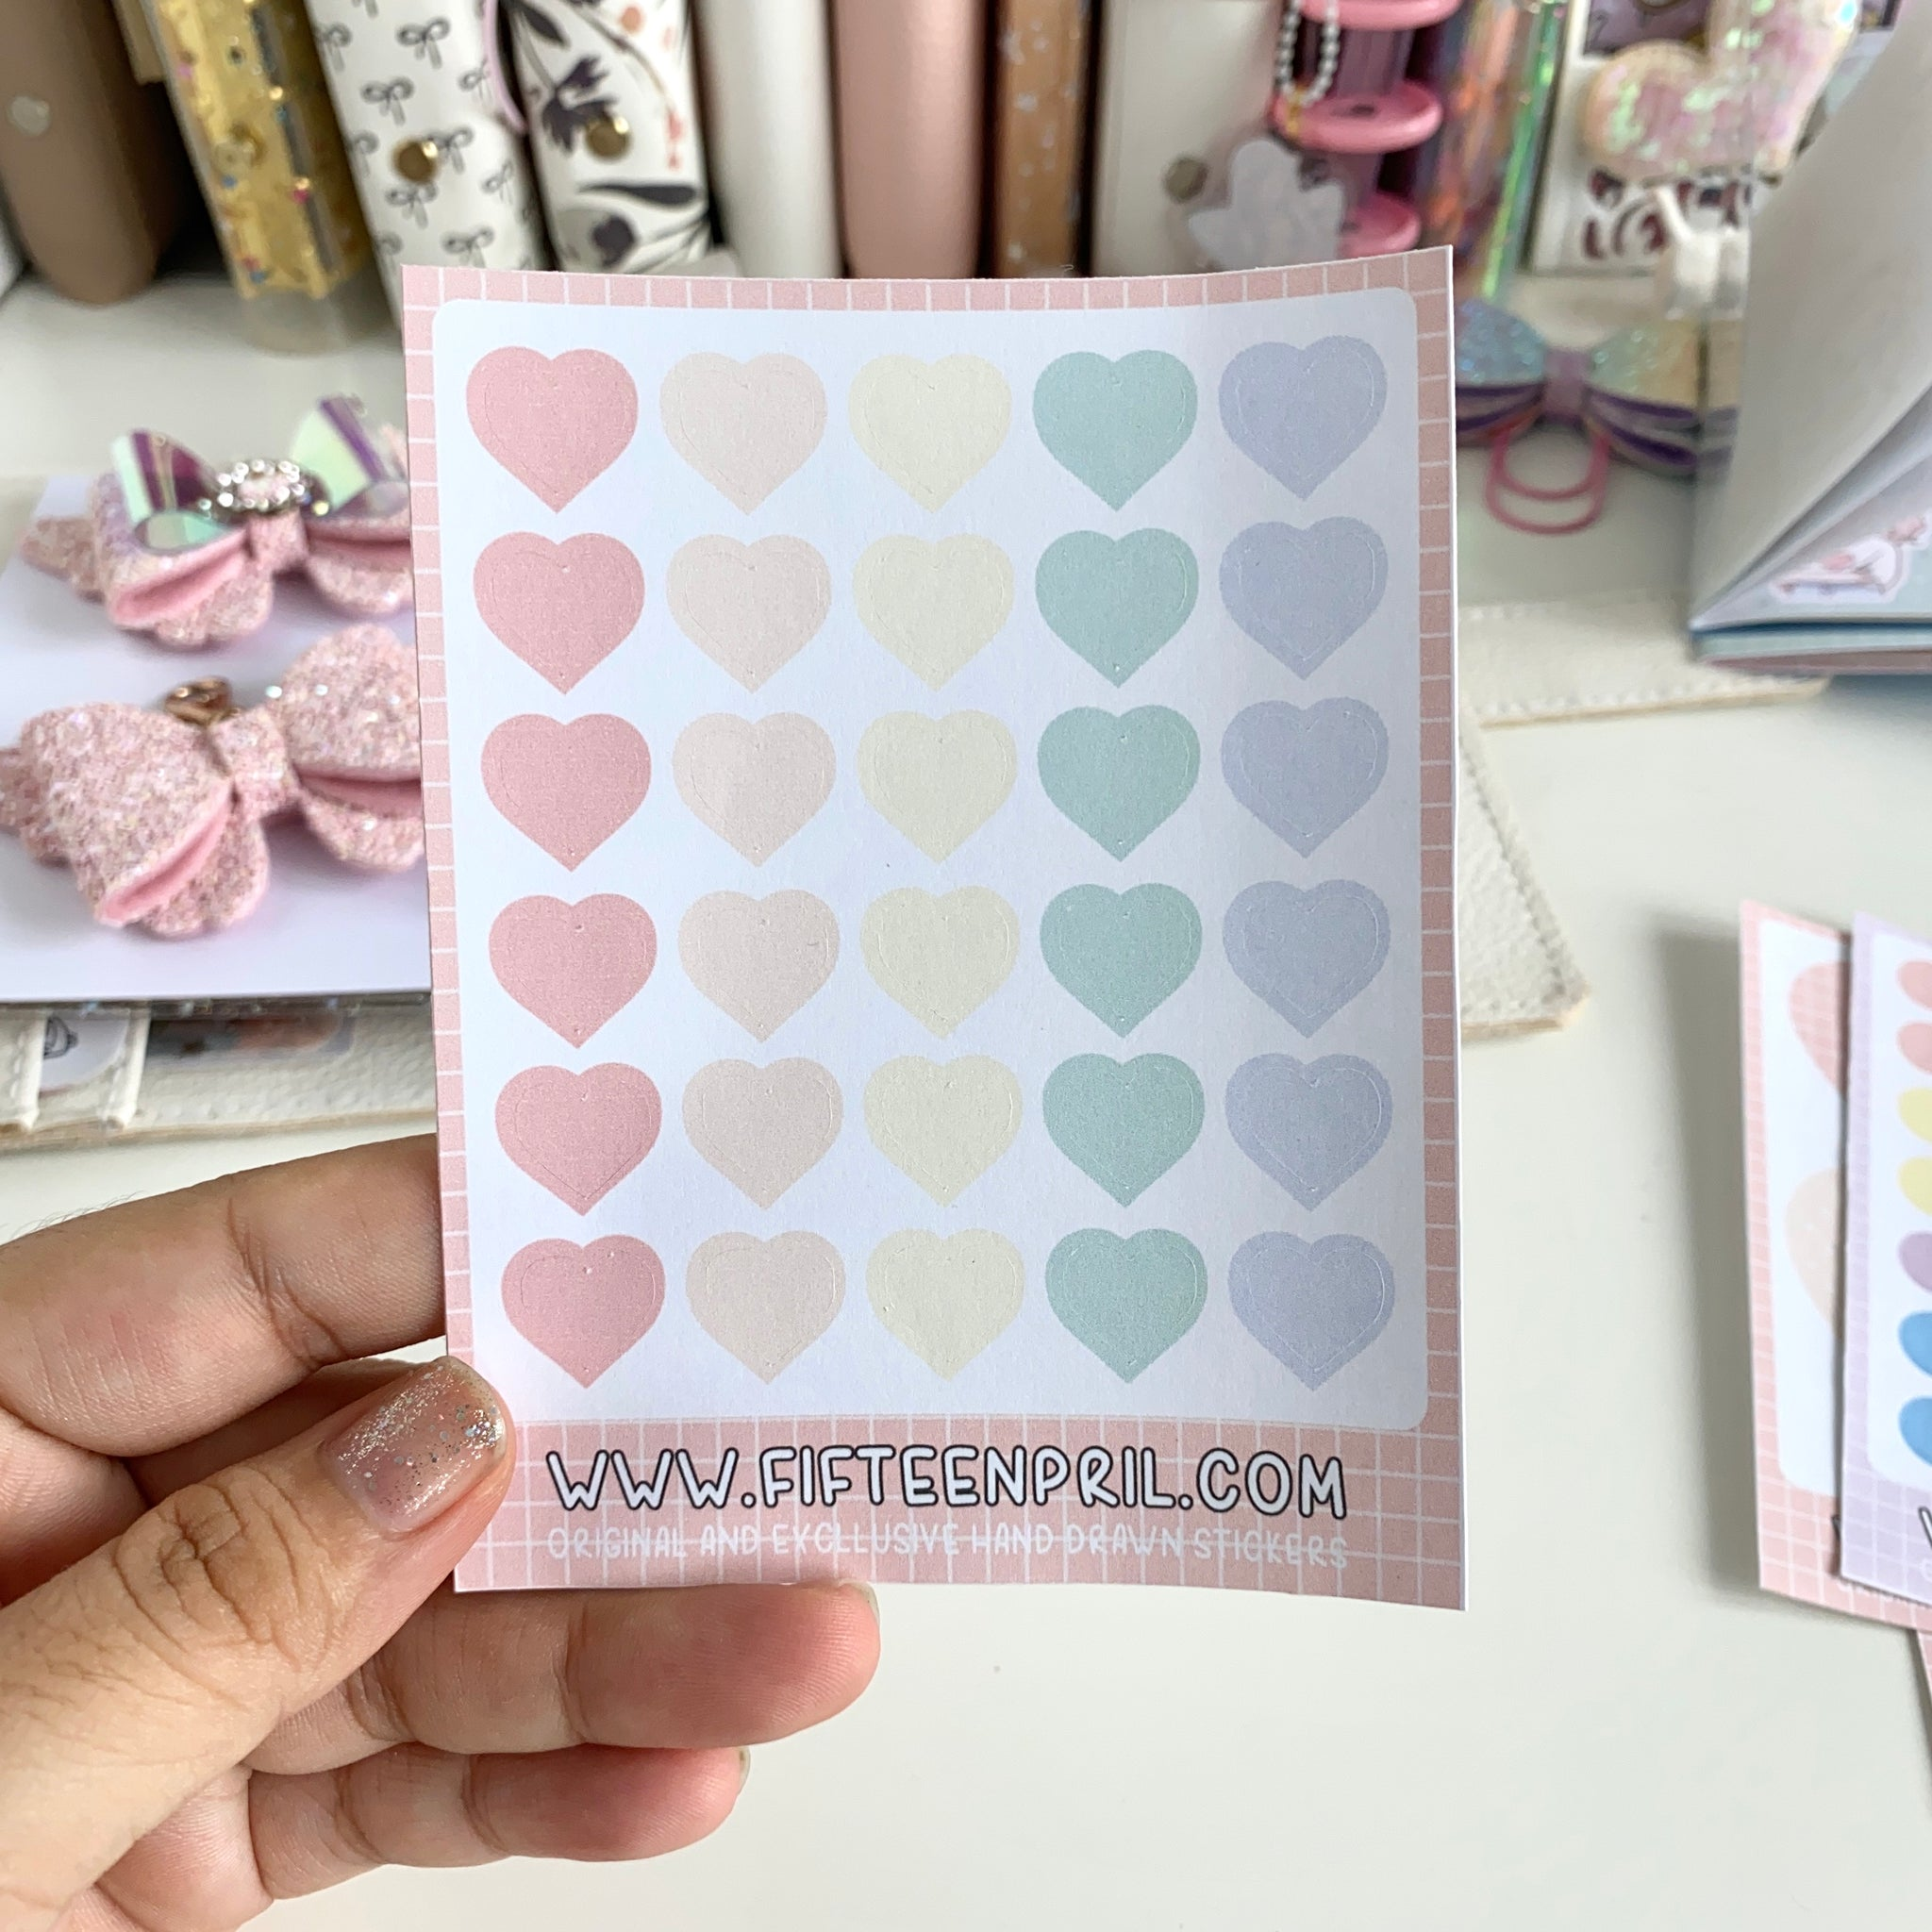 Bujo-Heart dots stickers